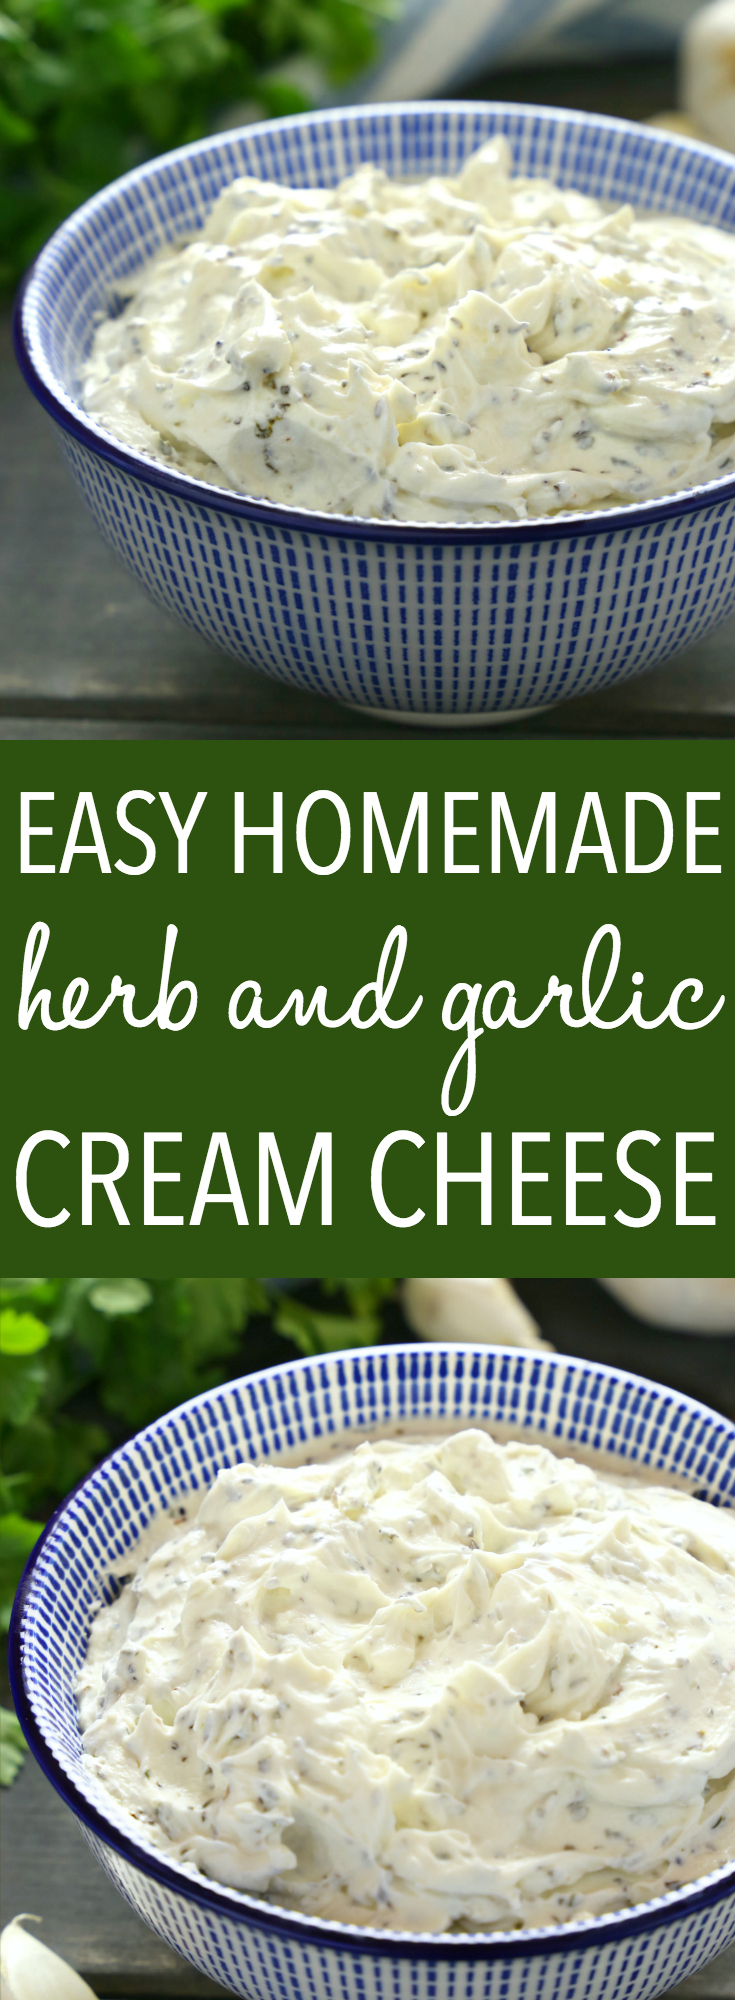 This Easy Homemade Herb and Garlic Cream Cheese is perfect for spreading on toast, bagels or crackers, and it makes a great appetizer! Skip the grocery store and make it yourself with only 5 basic ingredients! Recipe from thebusybaker.ca! #homemadecreamcheese #easyherbandgarliccreamcheese #easyappetizerrecipe  via @busybakerblog